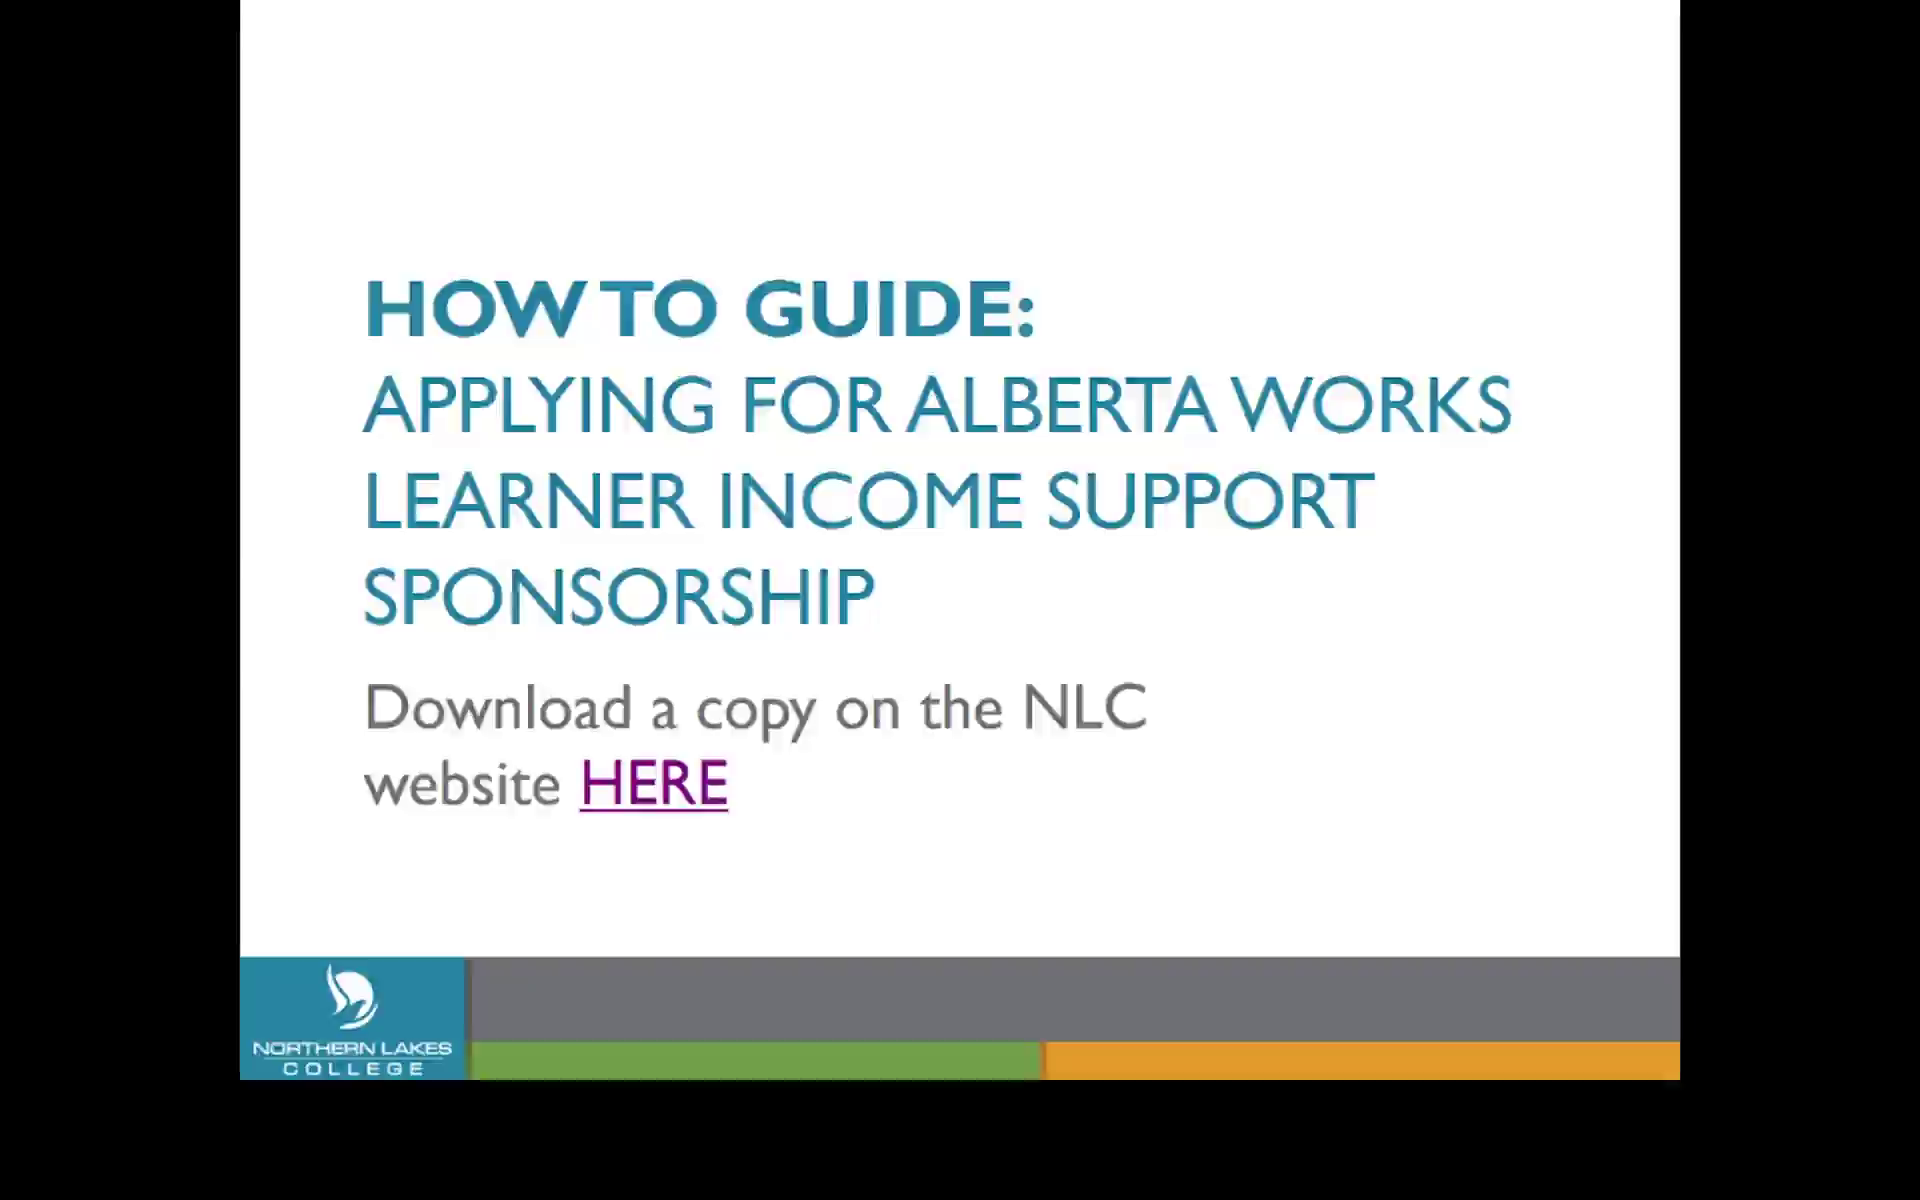 Alberta Works - Learner Income Support Sponsorship: Northern